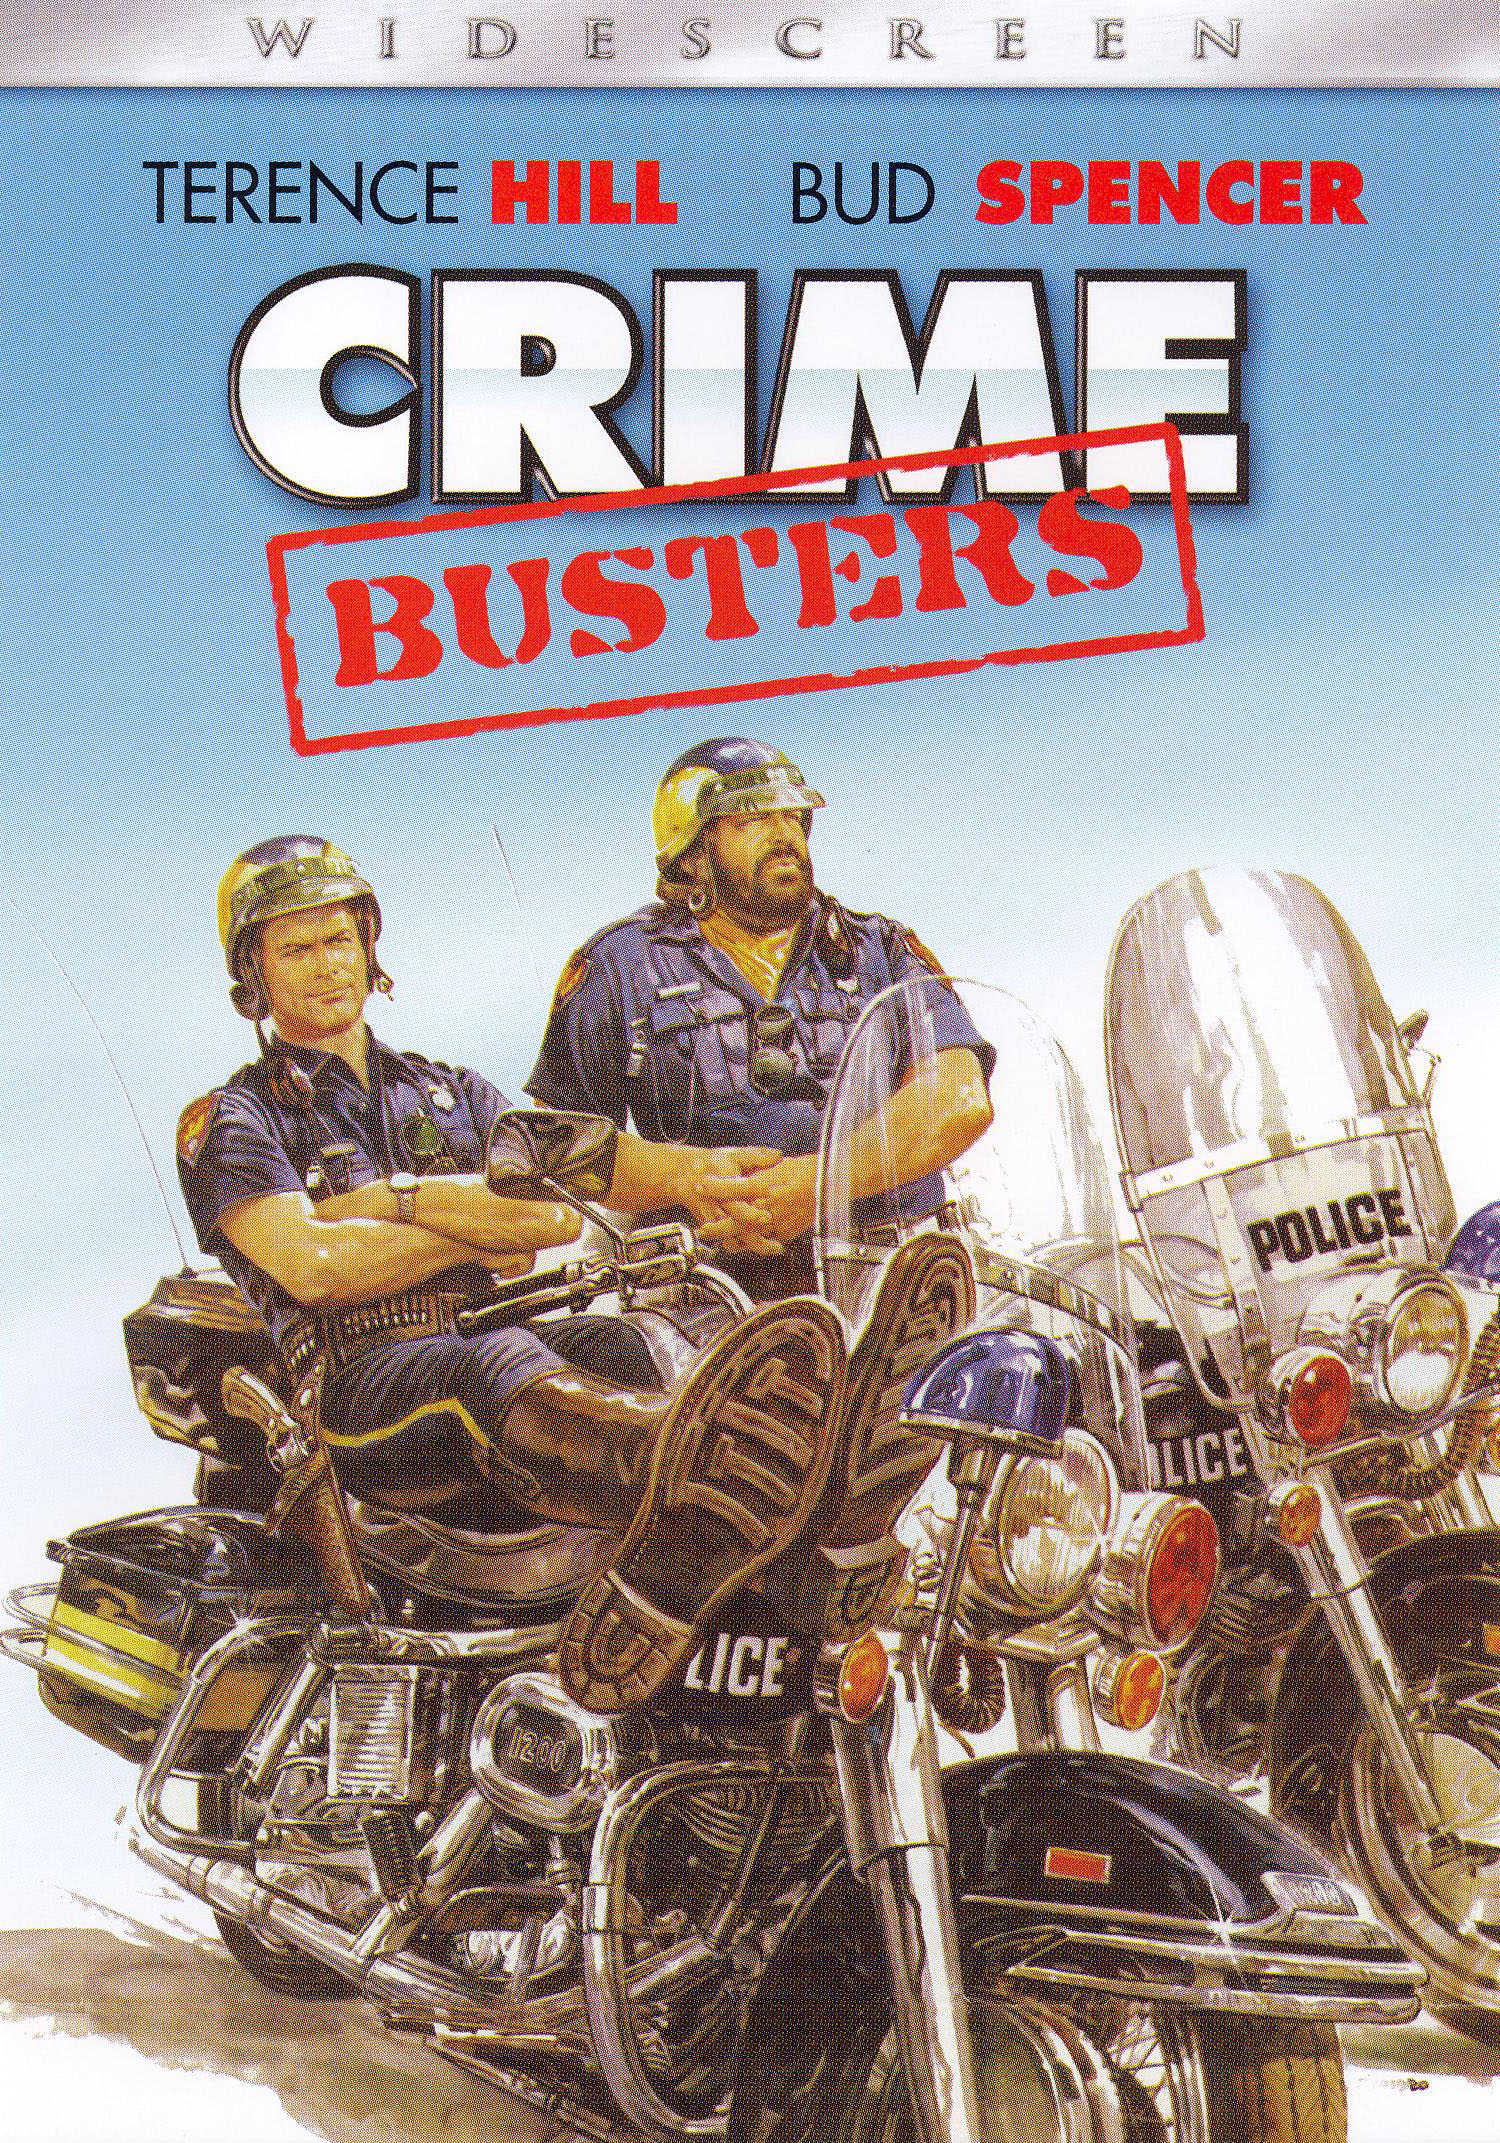 Crimebusters